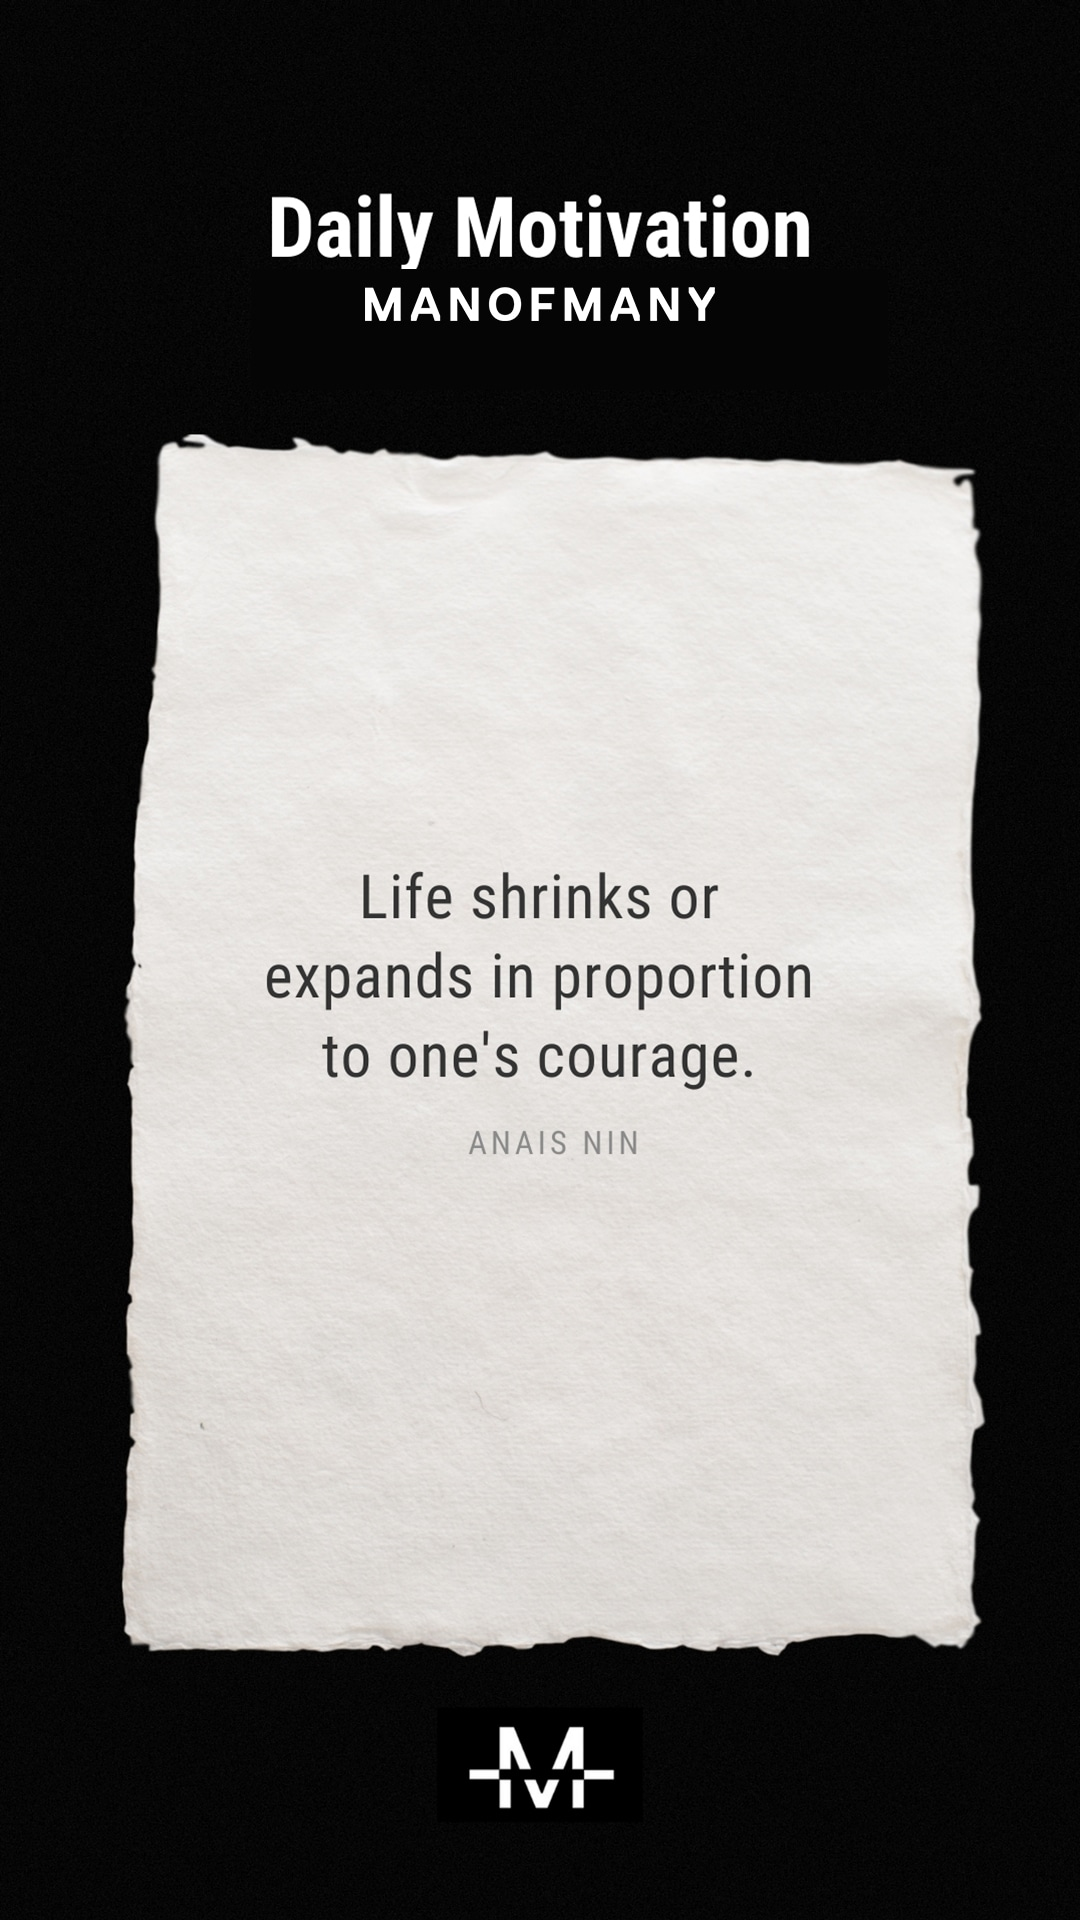 Life shrinks or expands in proportion to one's courage. –Anais Nin quote